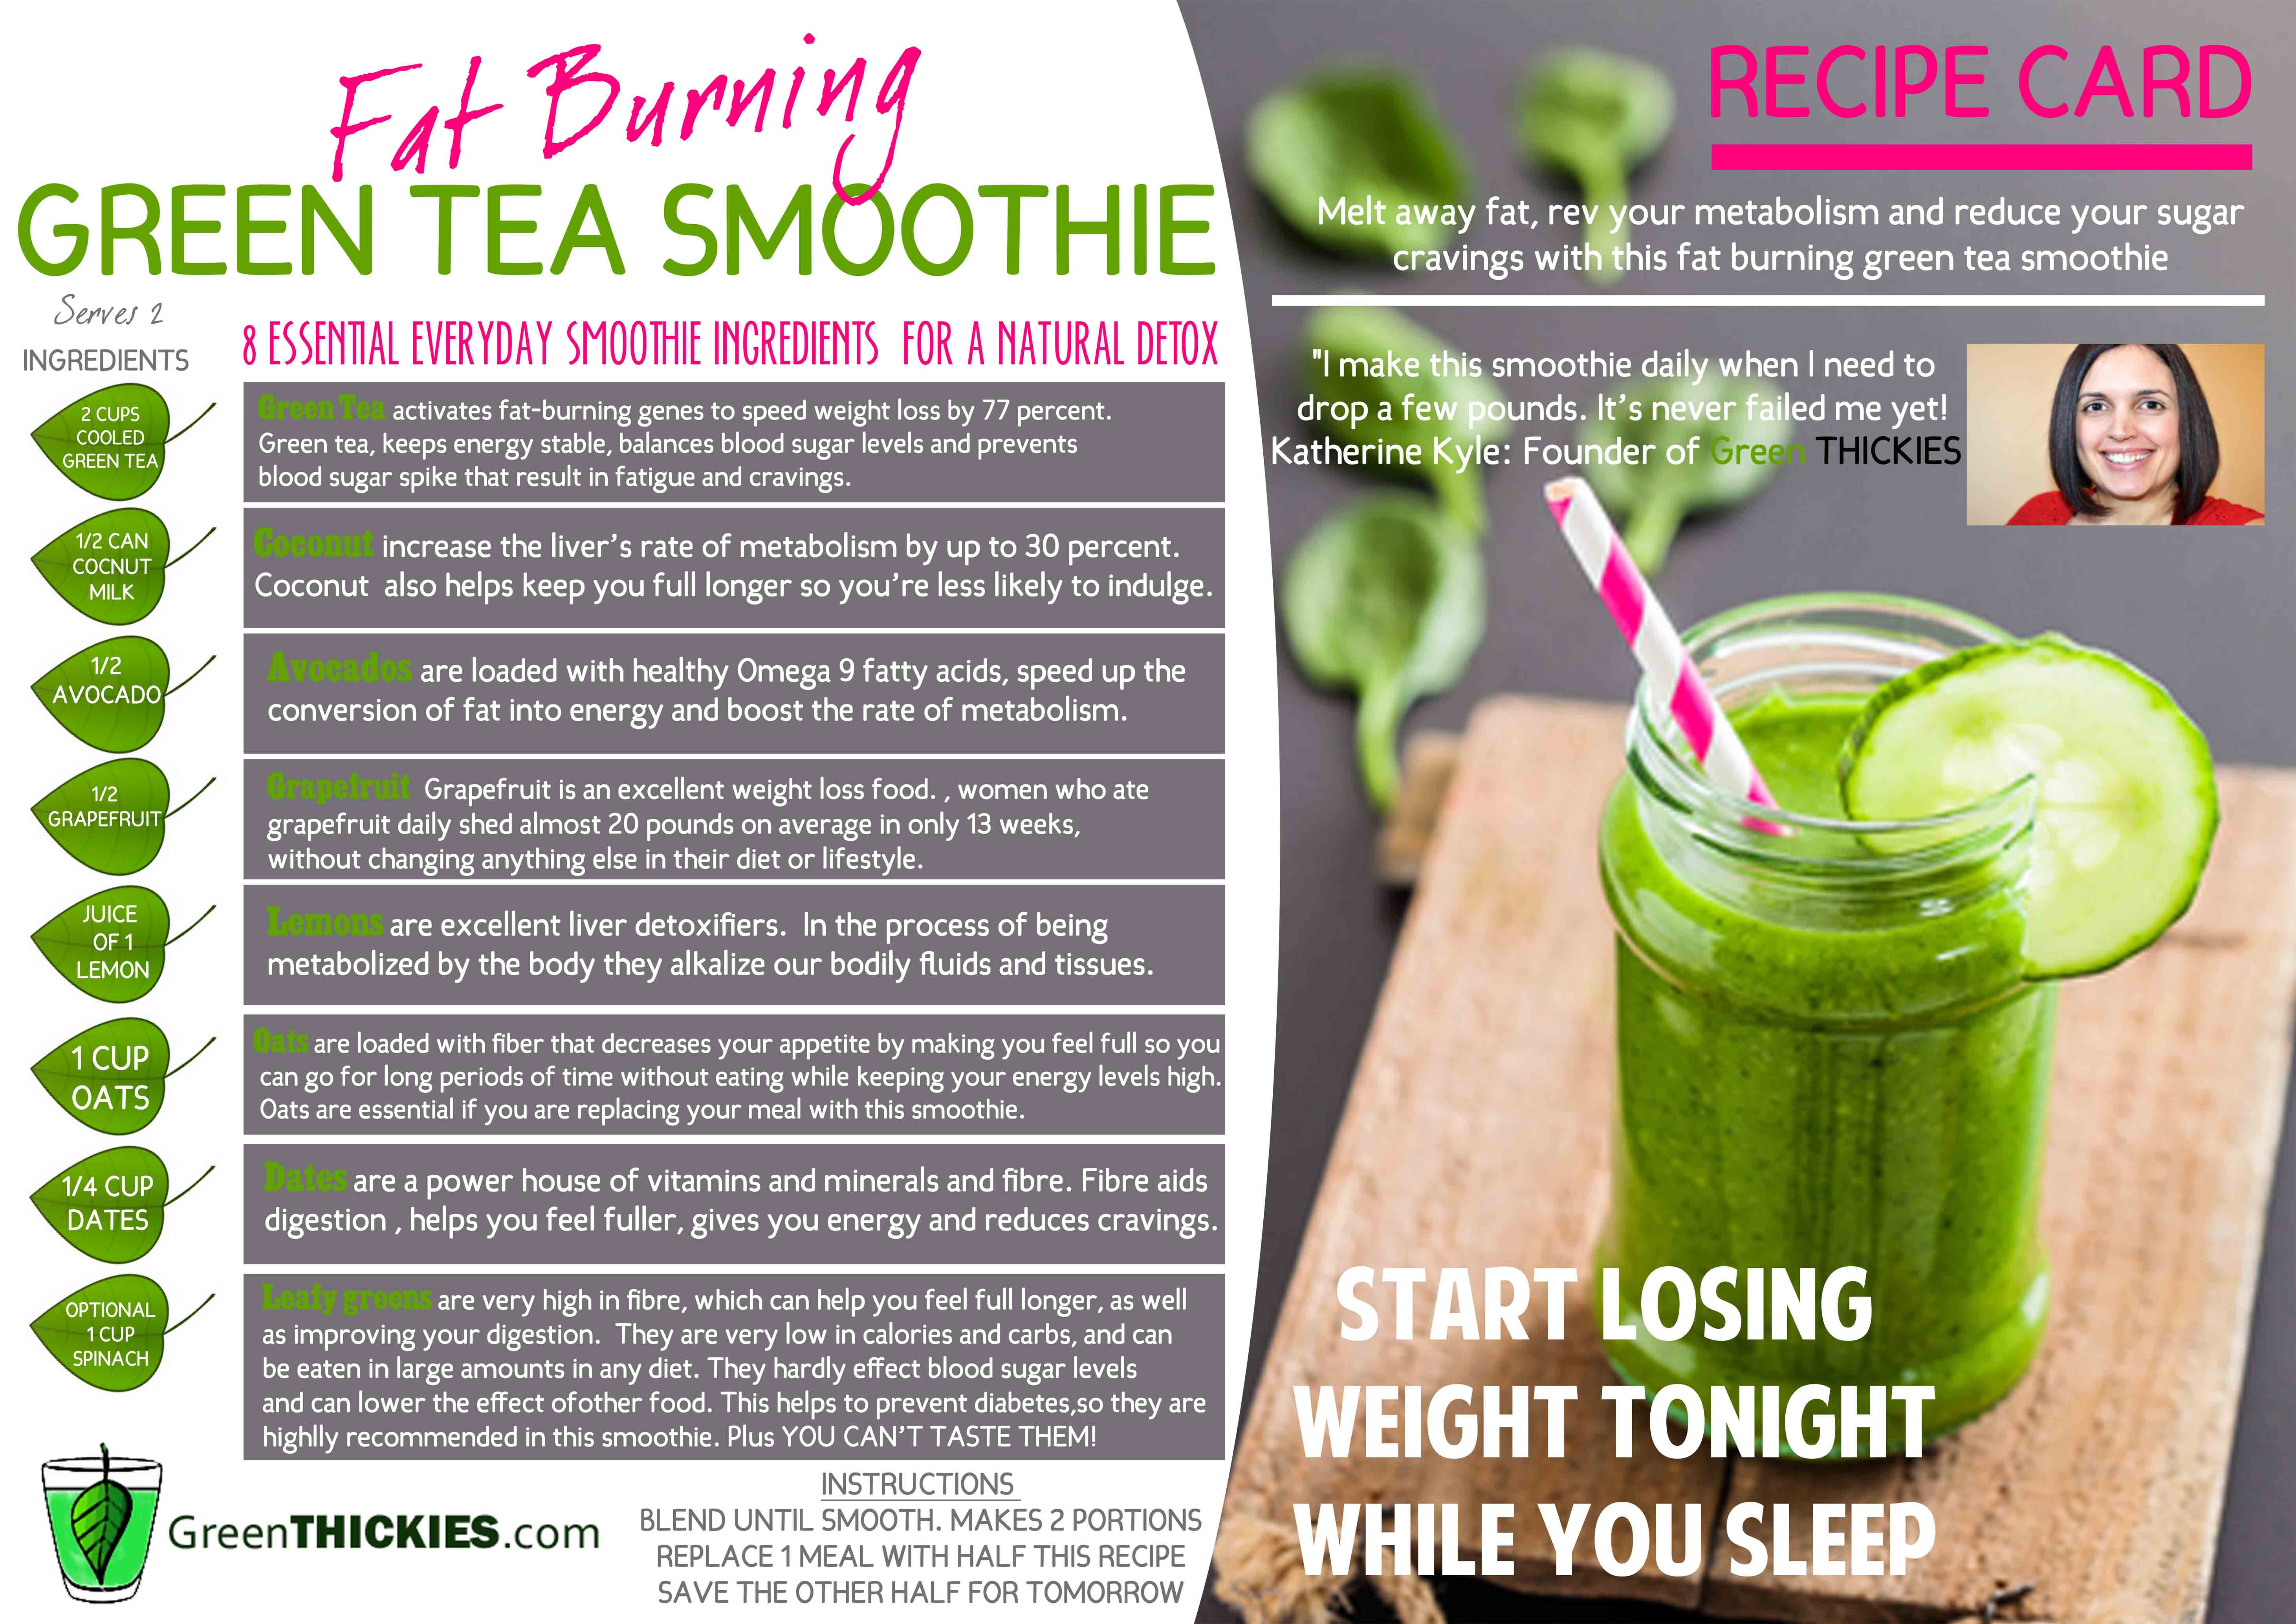 Smoothie Diet Recipes For Weight Loss Plan  Recipe Card Download Green Thickies Filling Green